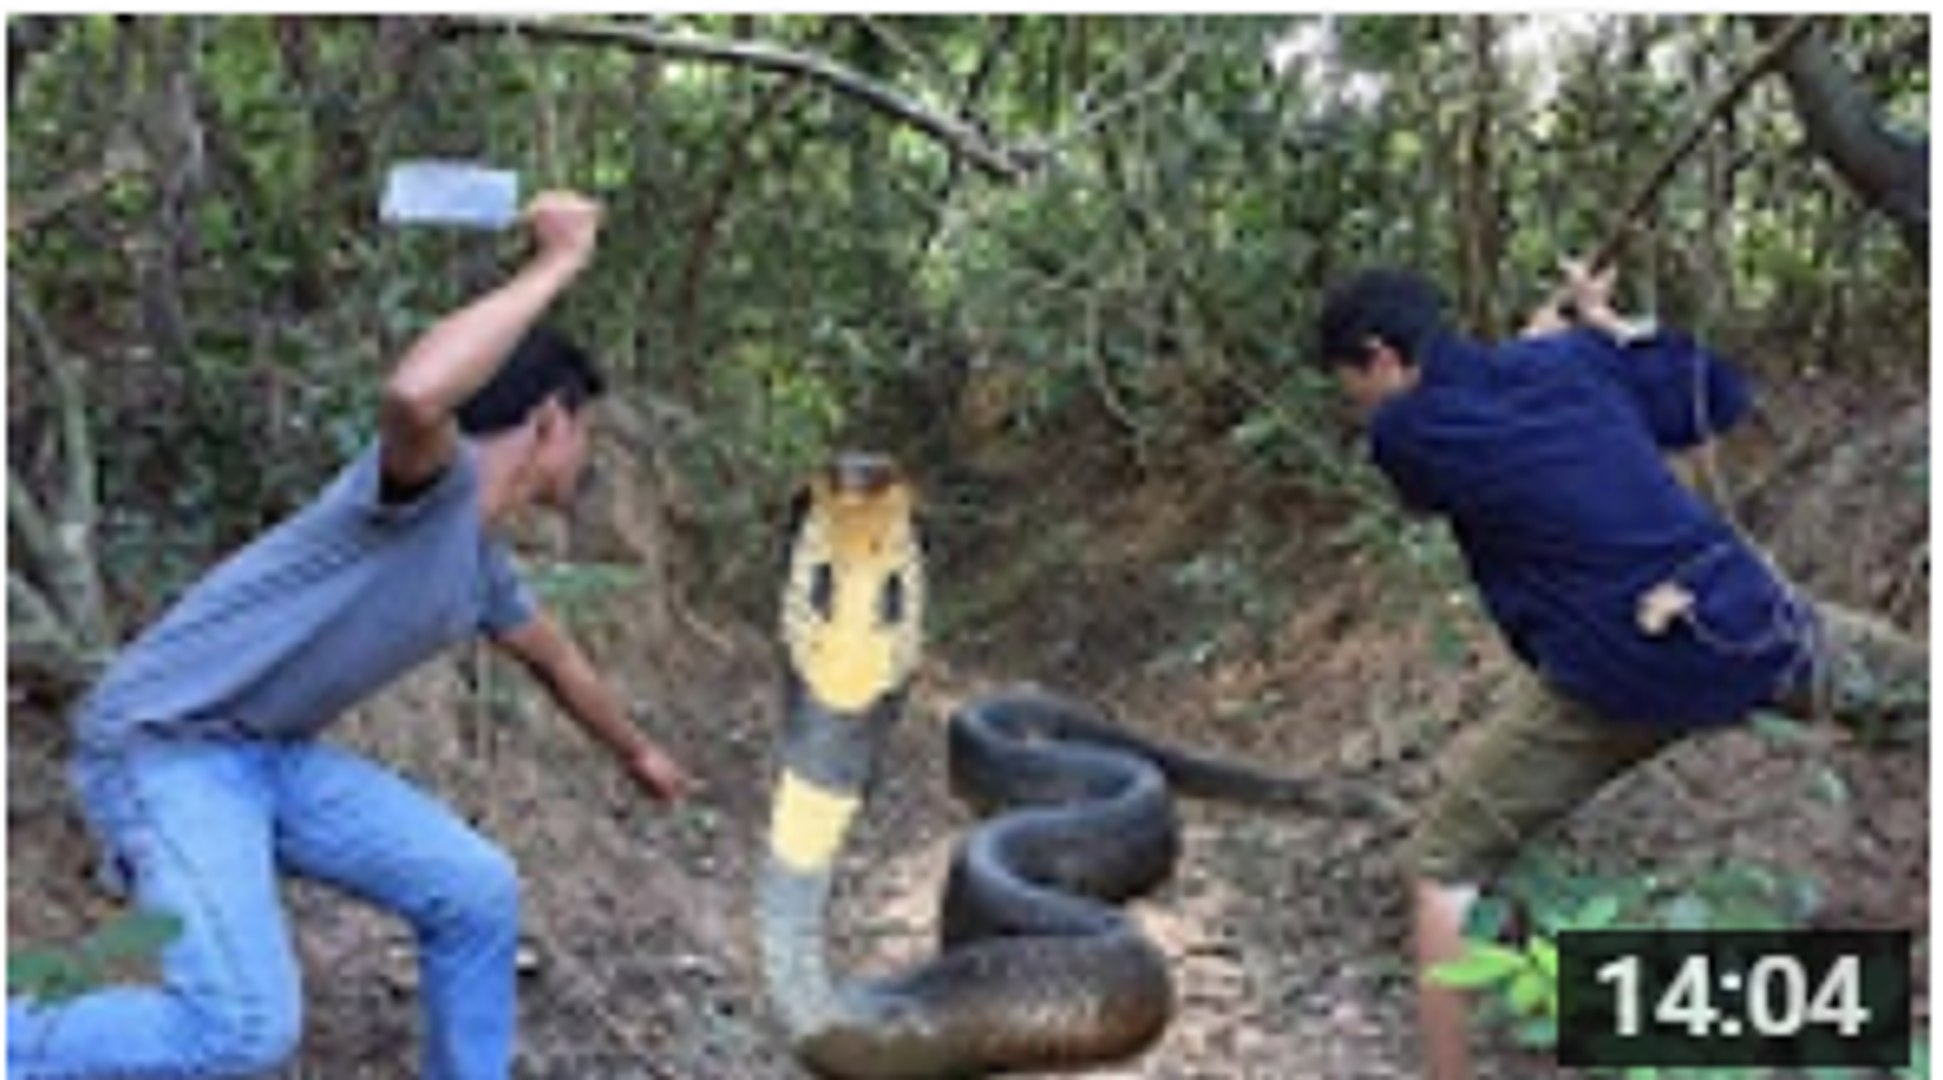 Amazing Human Catch Tree Snake Using The Simple Net Trap - How to Catch Tree Snake in Cambodia